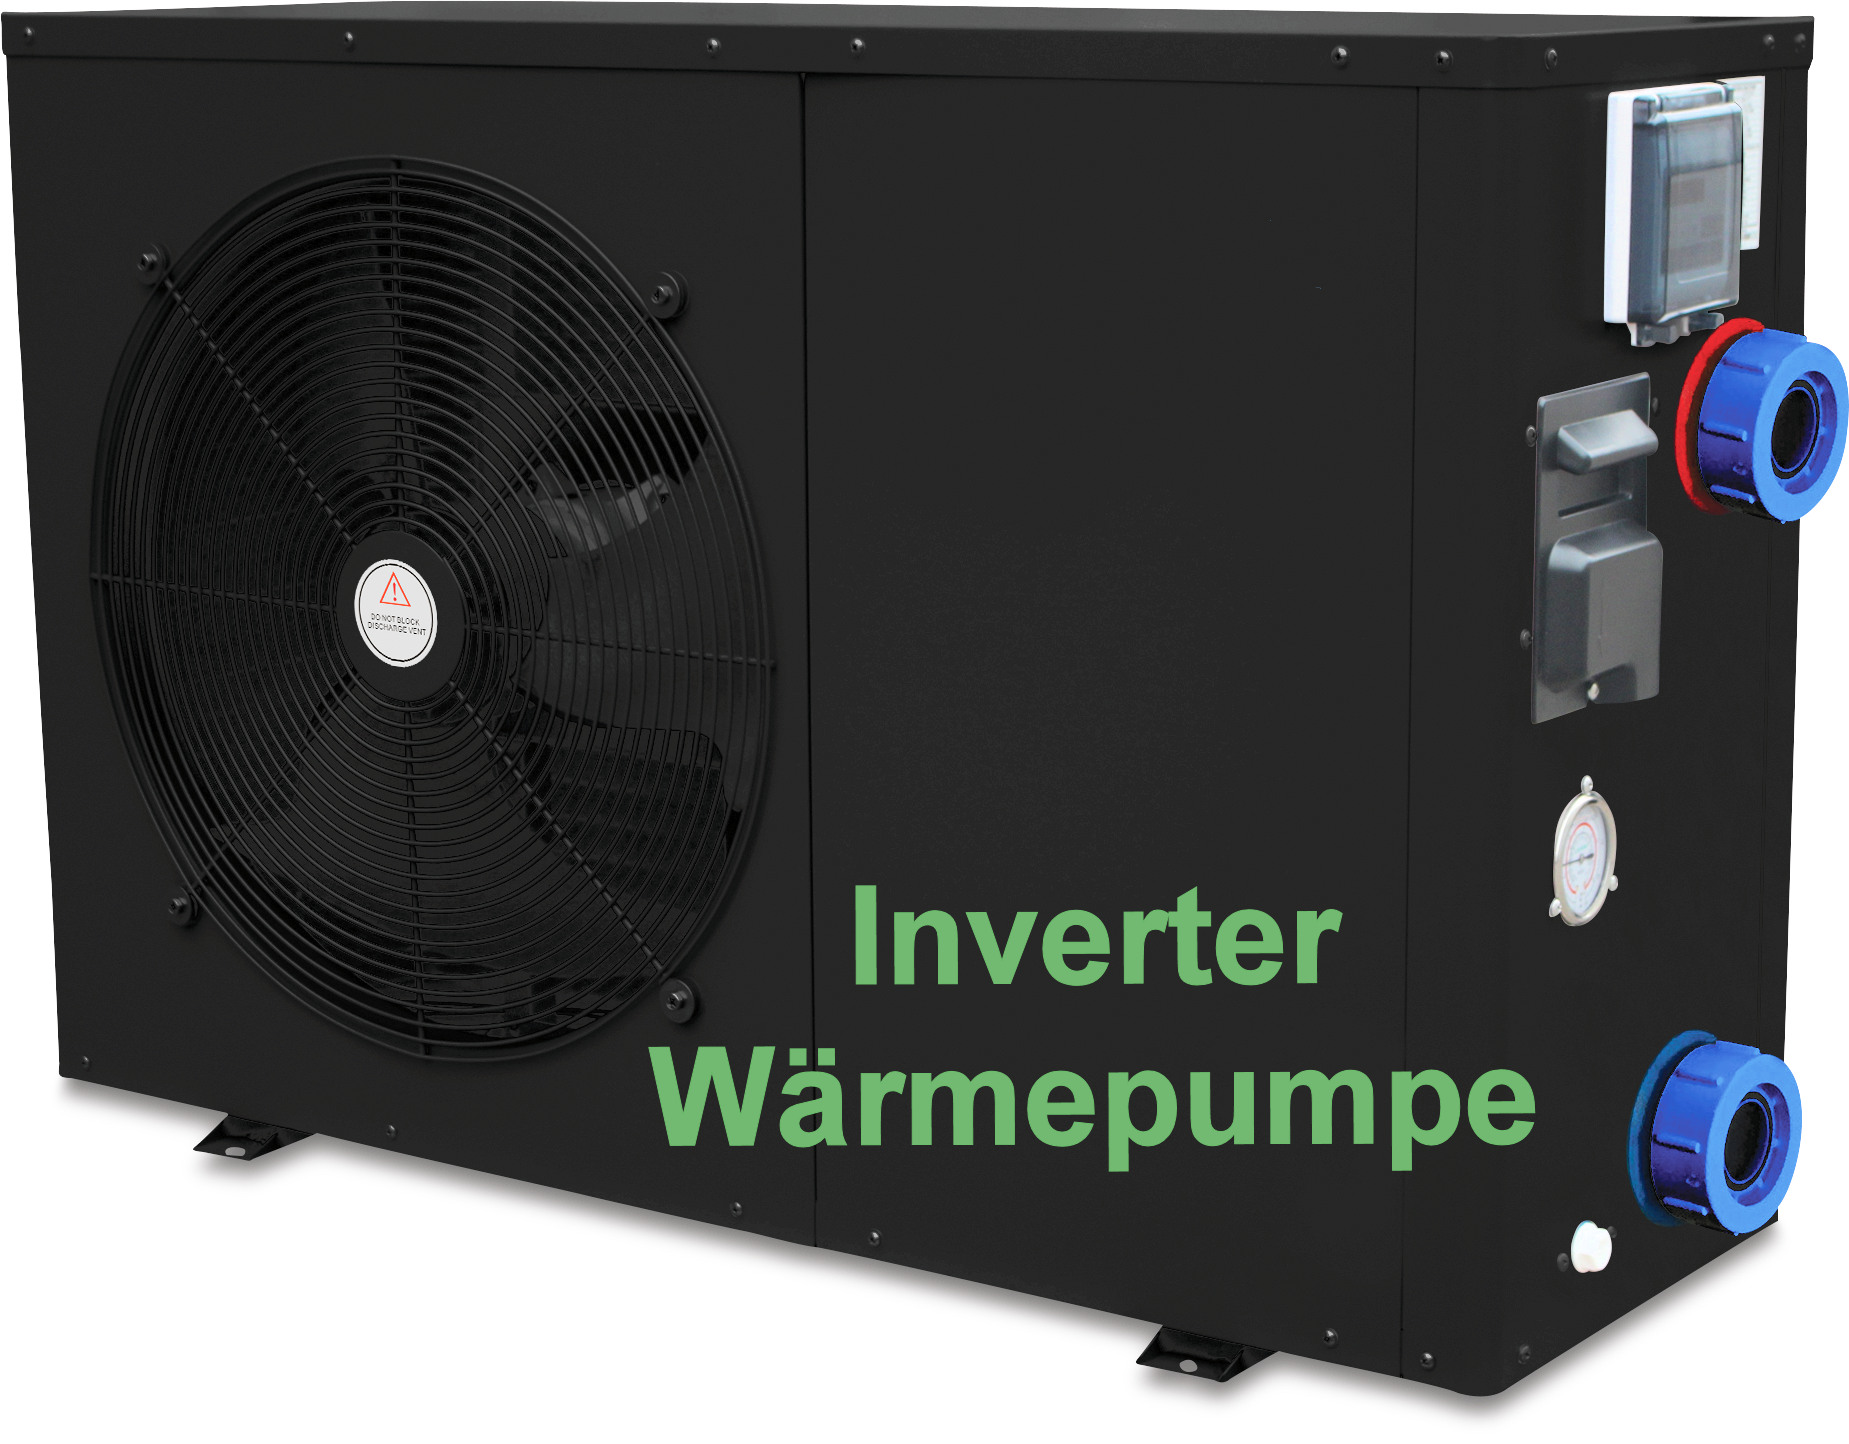 w rmepumpe hyd s inverter 6 w rmepumpen inverter pool. Black Bedroom Furniture Sets. Home Design Ideas